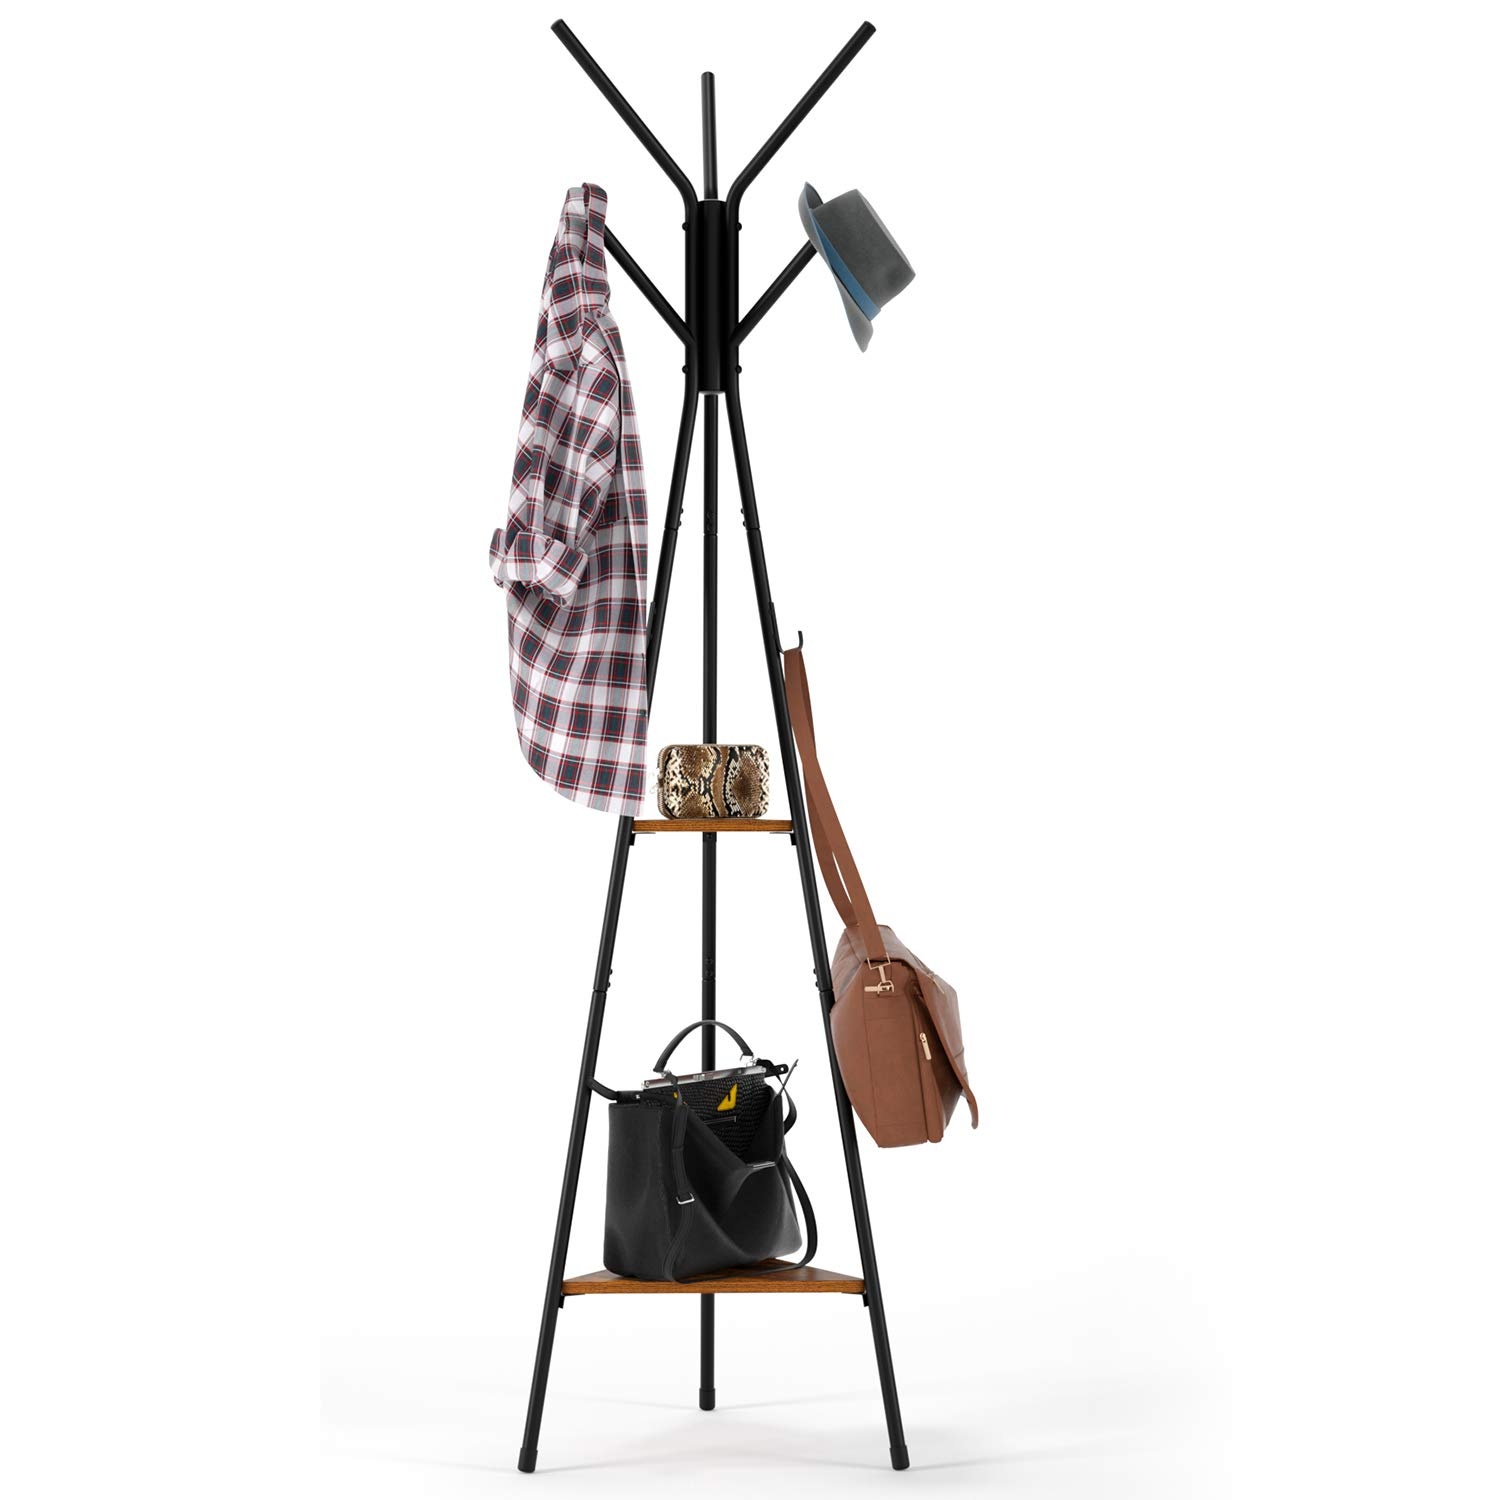 Homfa Coat Rack Stand 71 inch with 9 Hooks and 2-Tier Storage Shelves, Free Standing Industrial Hall Tree Clothes Hanger for Hat, Bag, Accent Metal Frame Vintage by Homfa